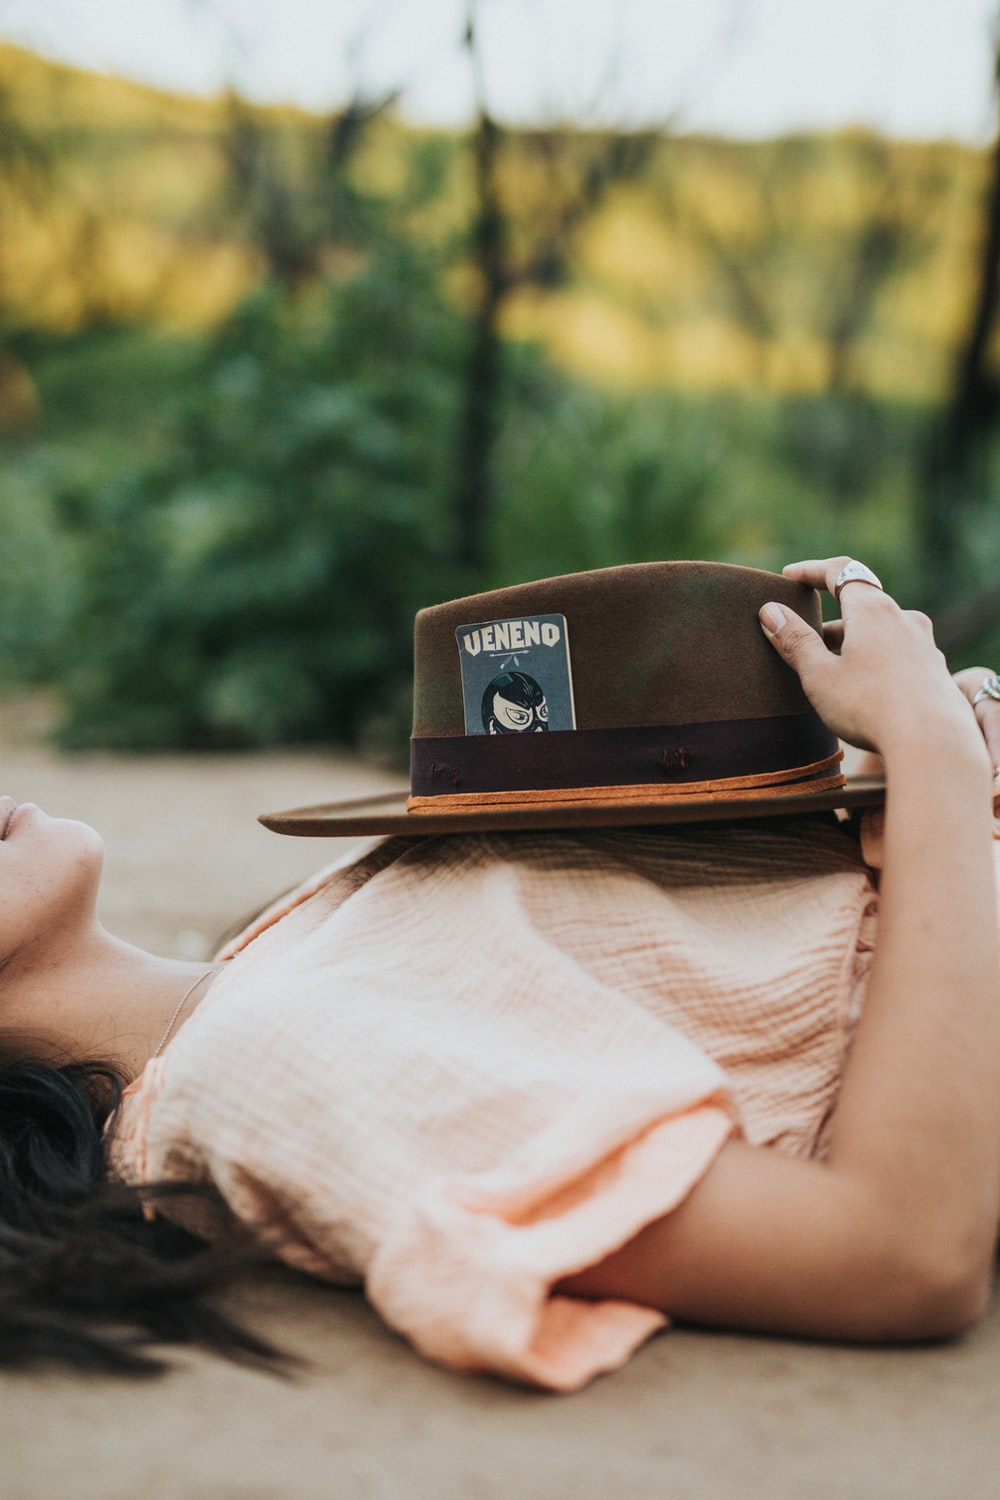 woman wearing beige blouse holding brown fedora hat